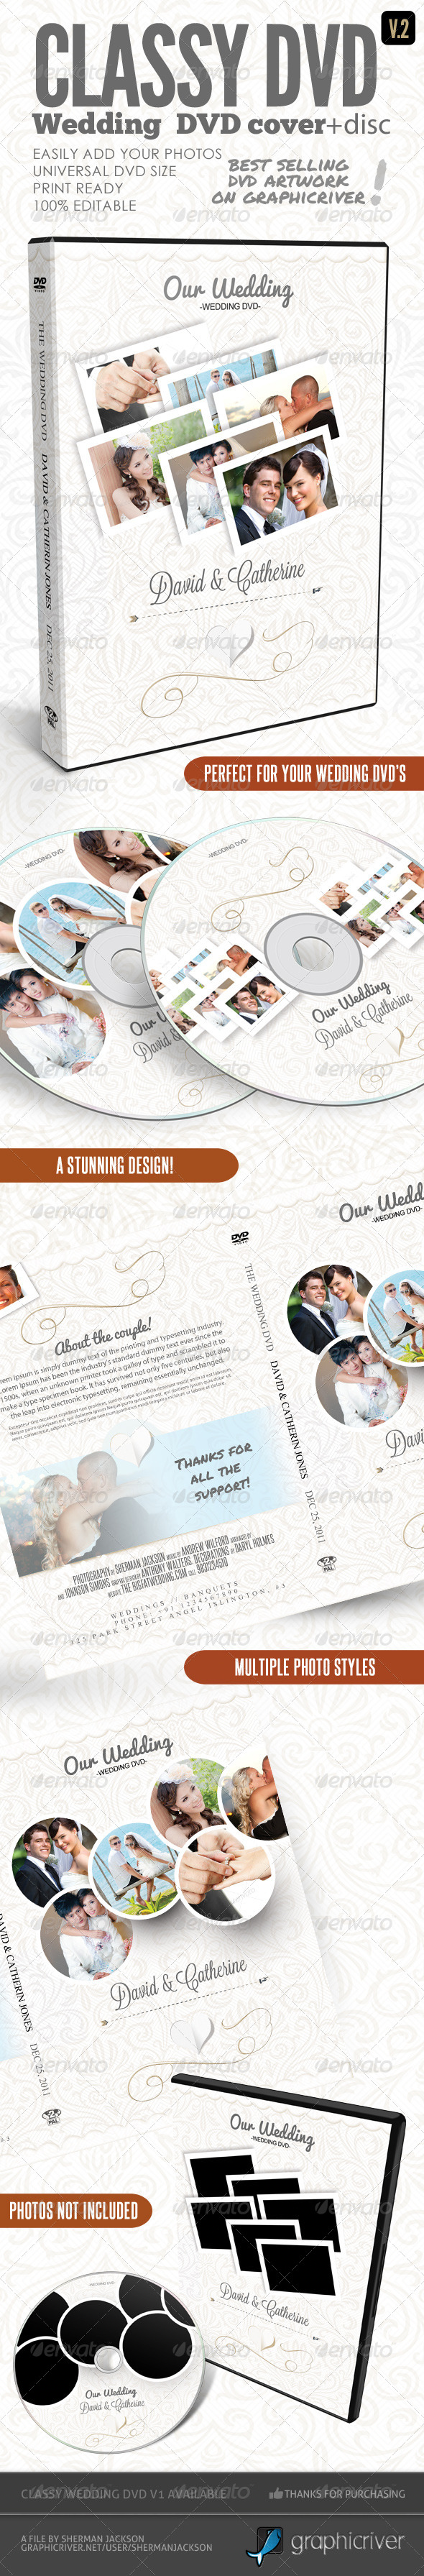 Classy Wedding DVD Covers V.2 - CD & DVD artwork Print Templates